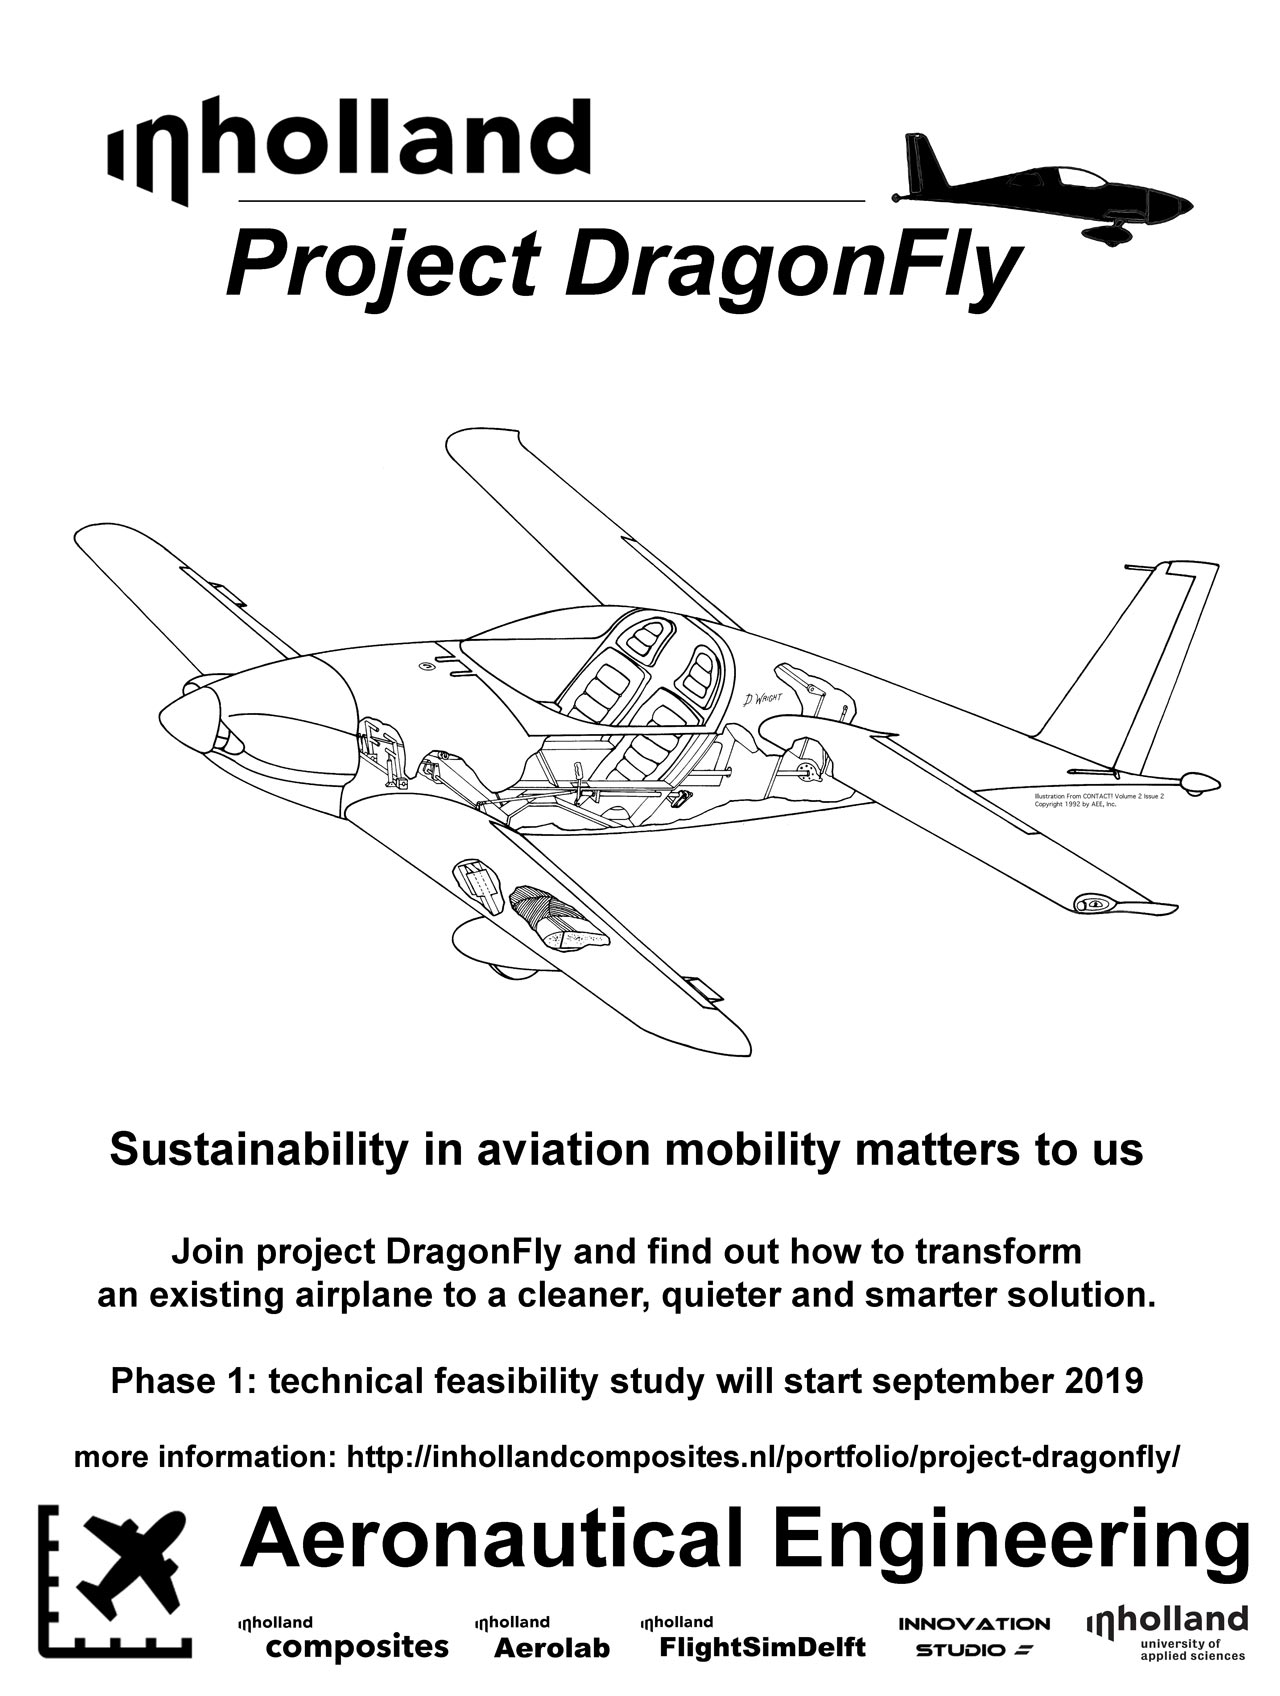 Project DragonFly is a project at Inholland Aeronautical Engineering in Delft about transforming the existing aviation industry to become more sustainable